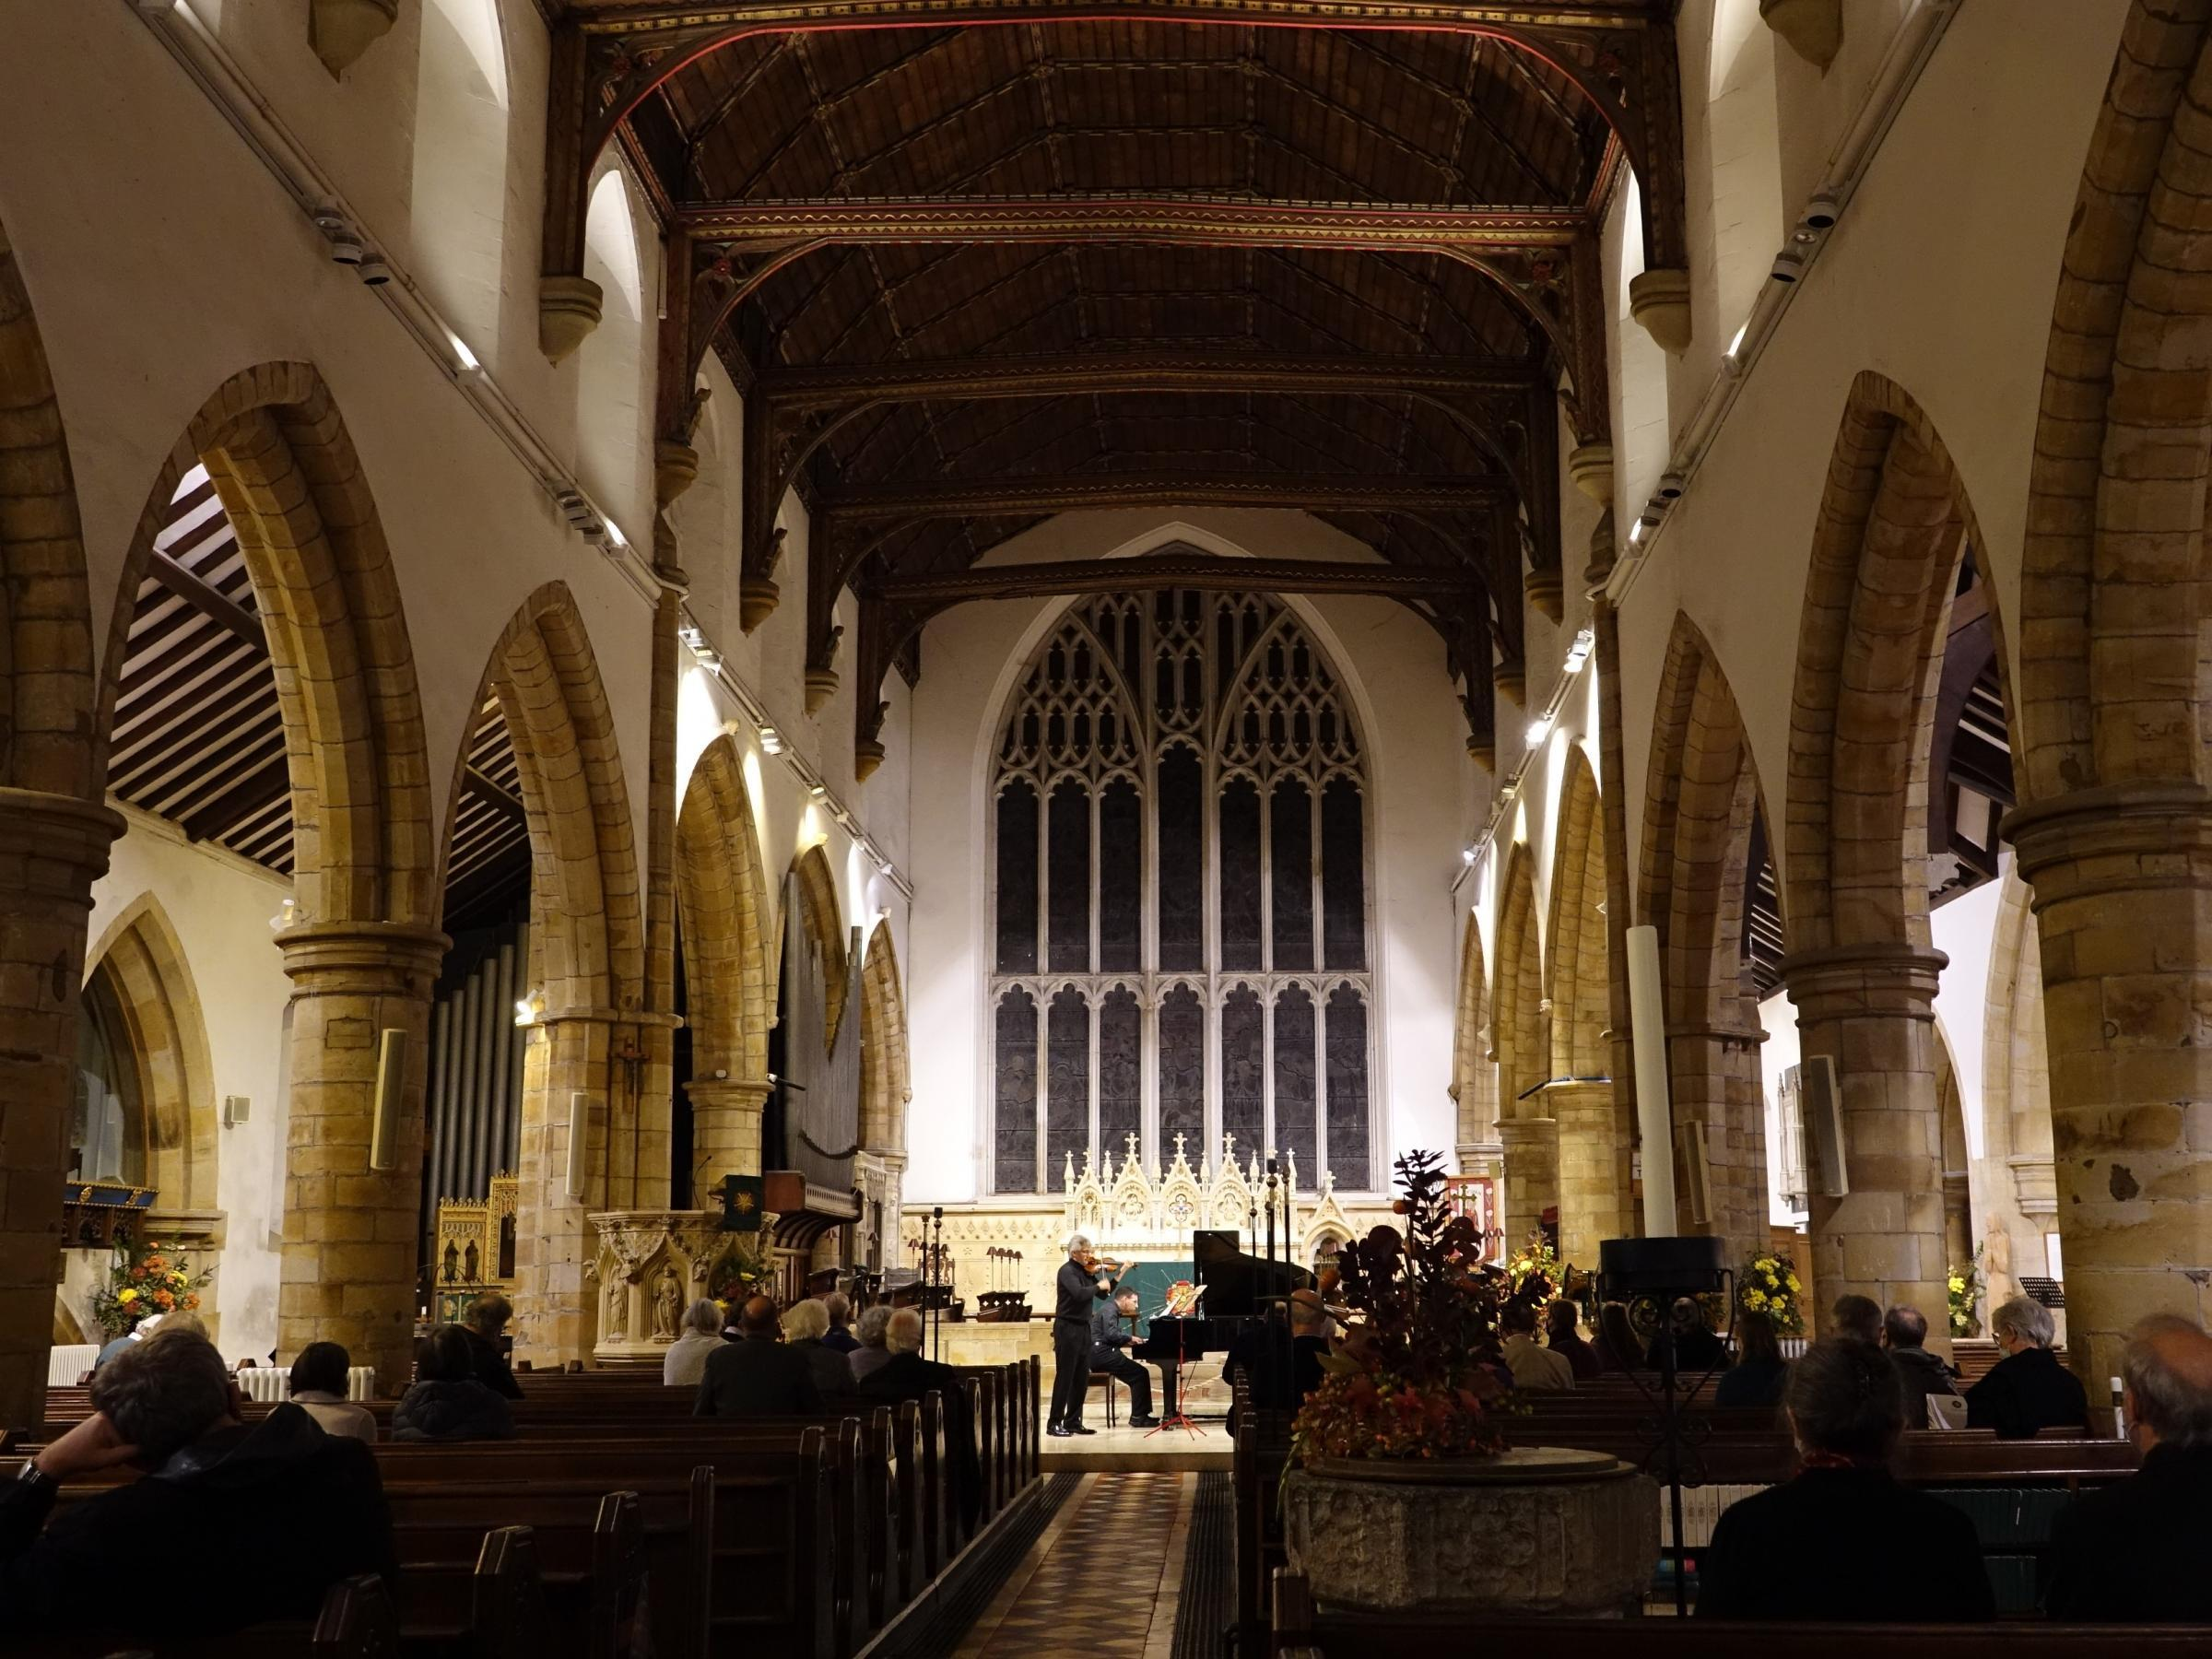 The English Music Festival will be taking place at St Marys Church, Horsham in May, including performances by the New Foxtrot Serenaders and by baritone singer Roderick Williams